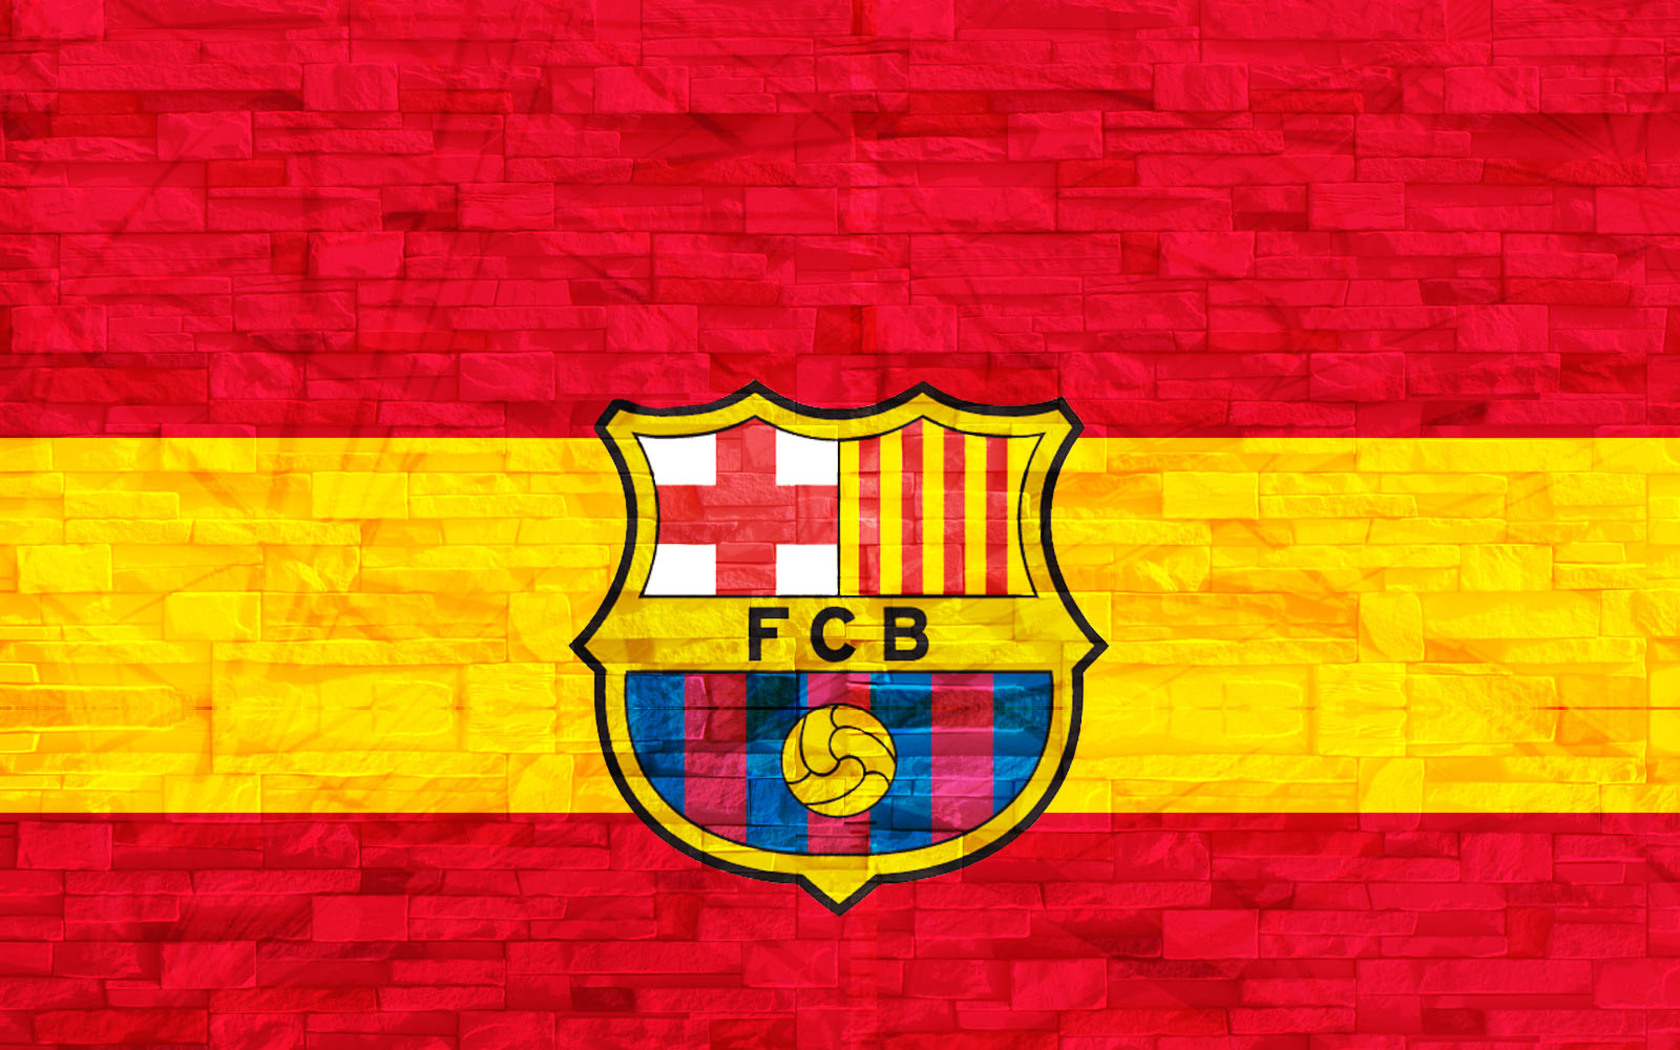 Спорт Футбол barcelona, fc, spain, soccer, football, logo обои рабочий стол